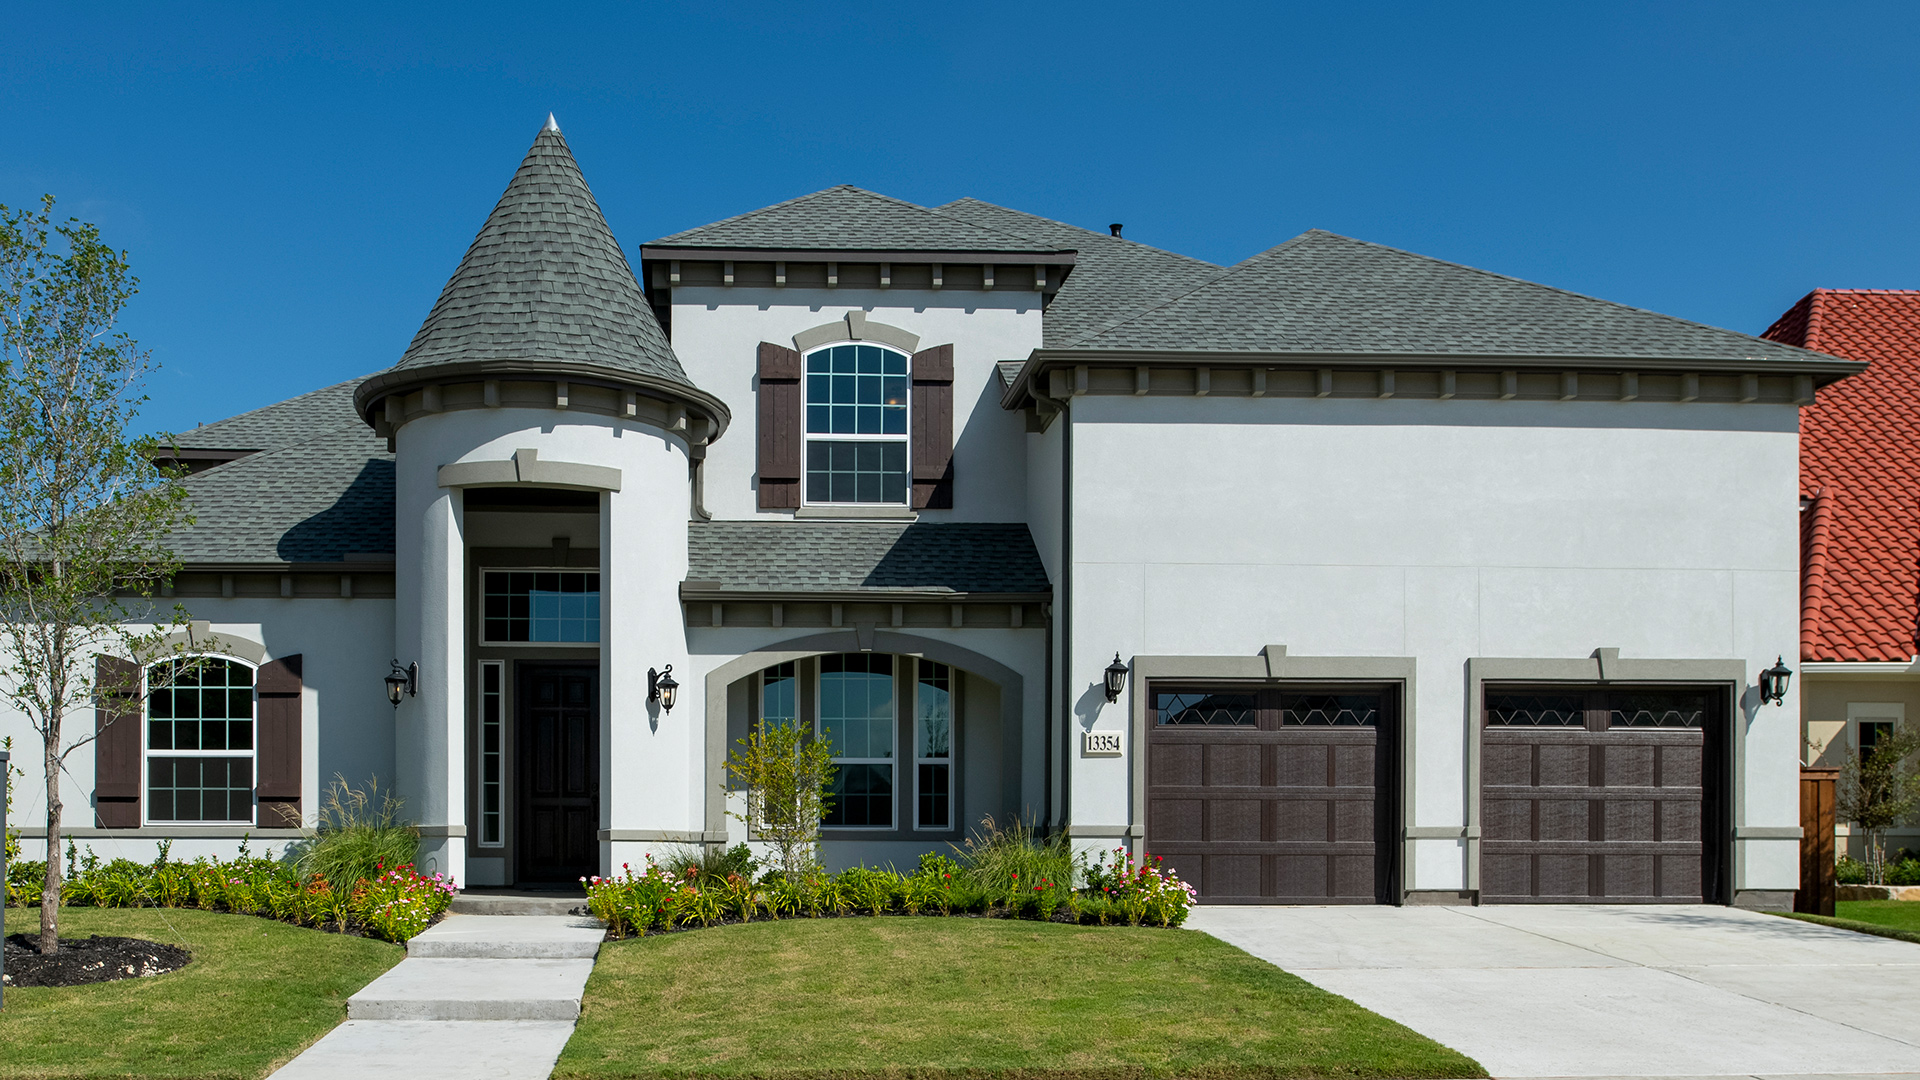 Highly desired stucco exterior